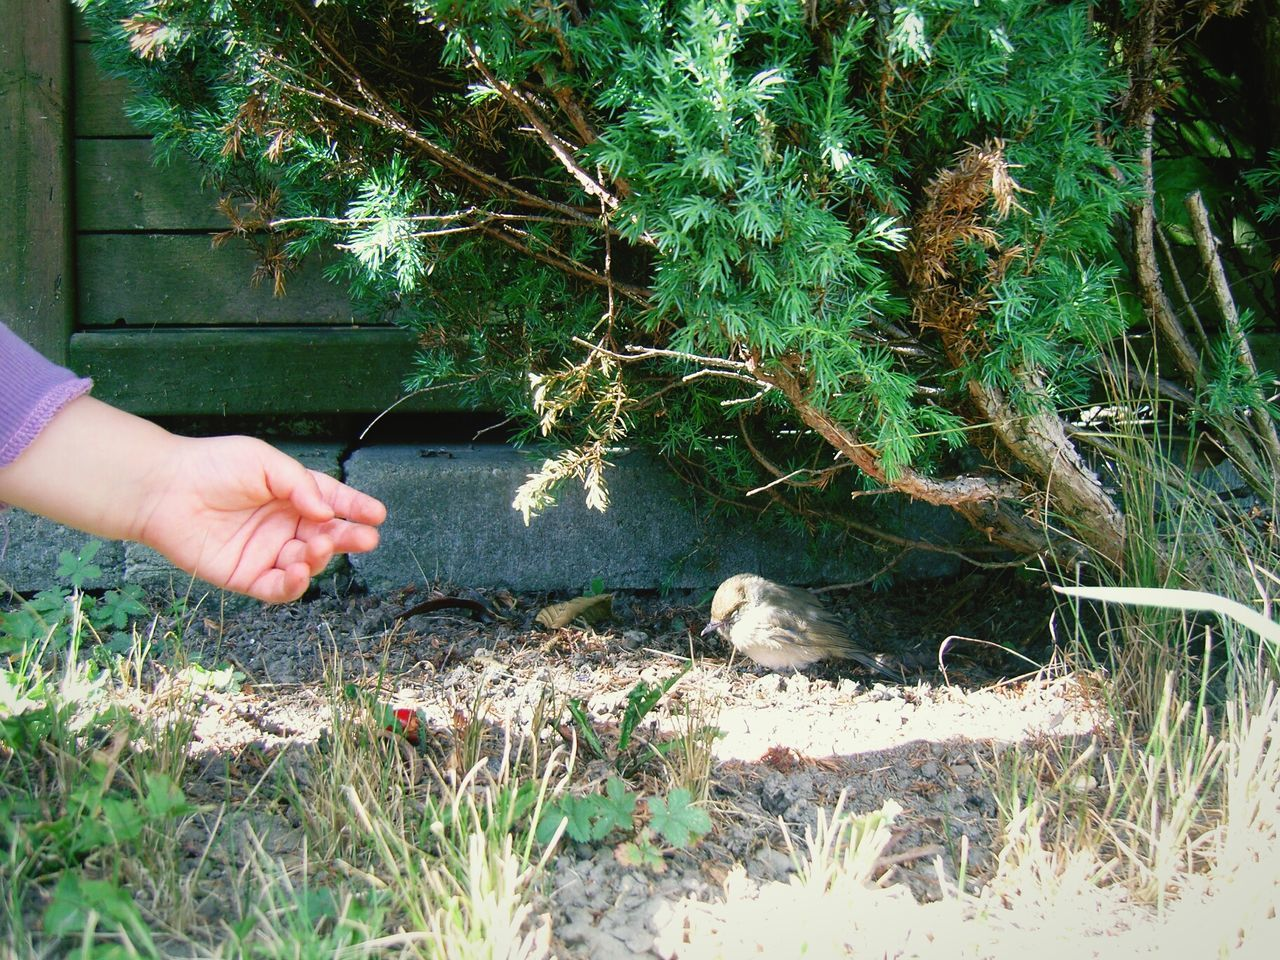 helping hand Bird Baby Hand Help Helping Hand Helping Helpme Bird Photography Baby Helping Birds_collection Birdy Little Girl Little Bird Little Hand Nesting Birds Young Nature Naturelover Naturelovers Nature On Your Doorstep Feeding The Birds Tiny Bird Tiny Hand Kind Helper Little Things